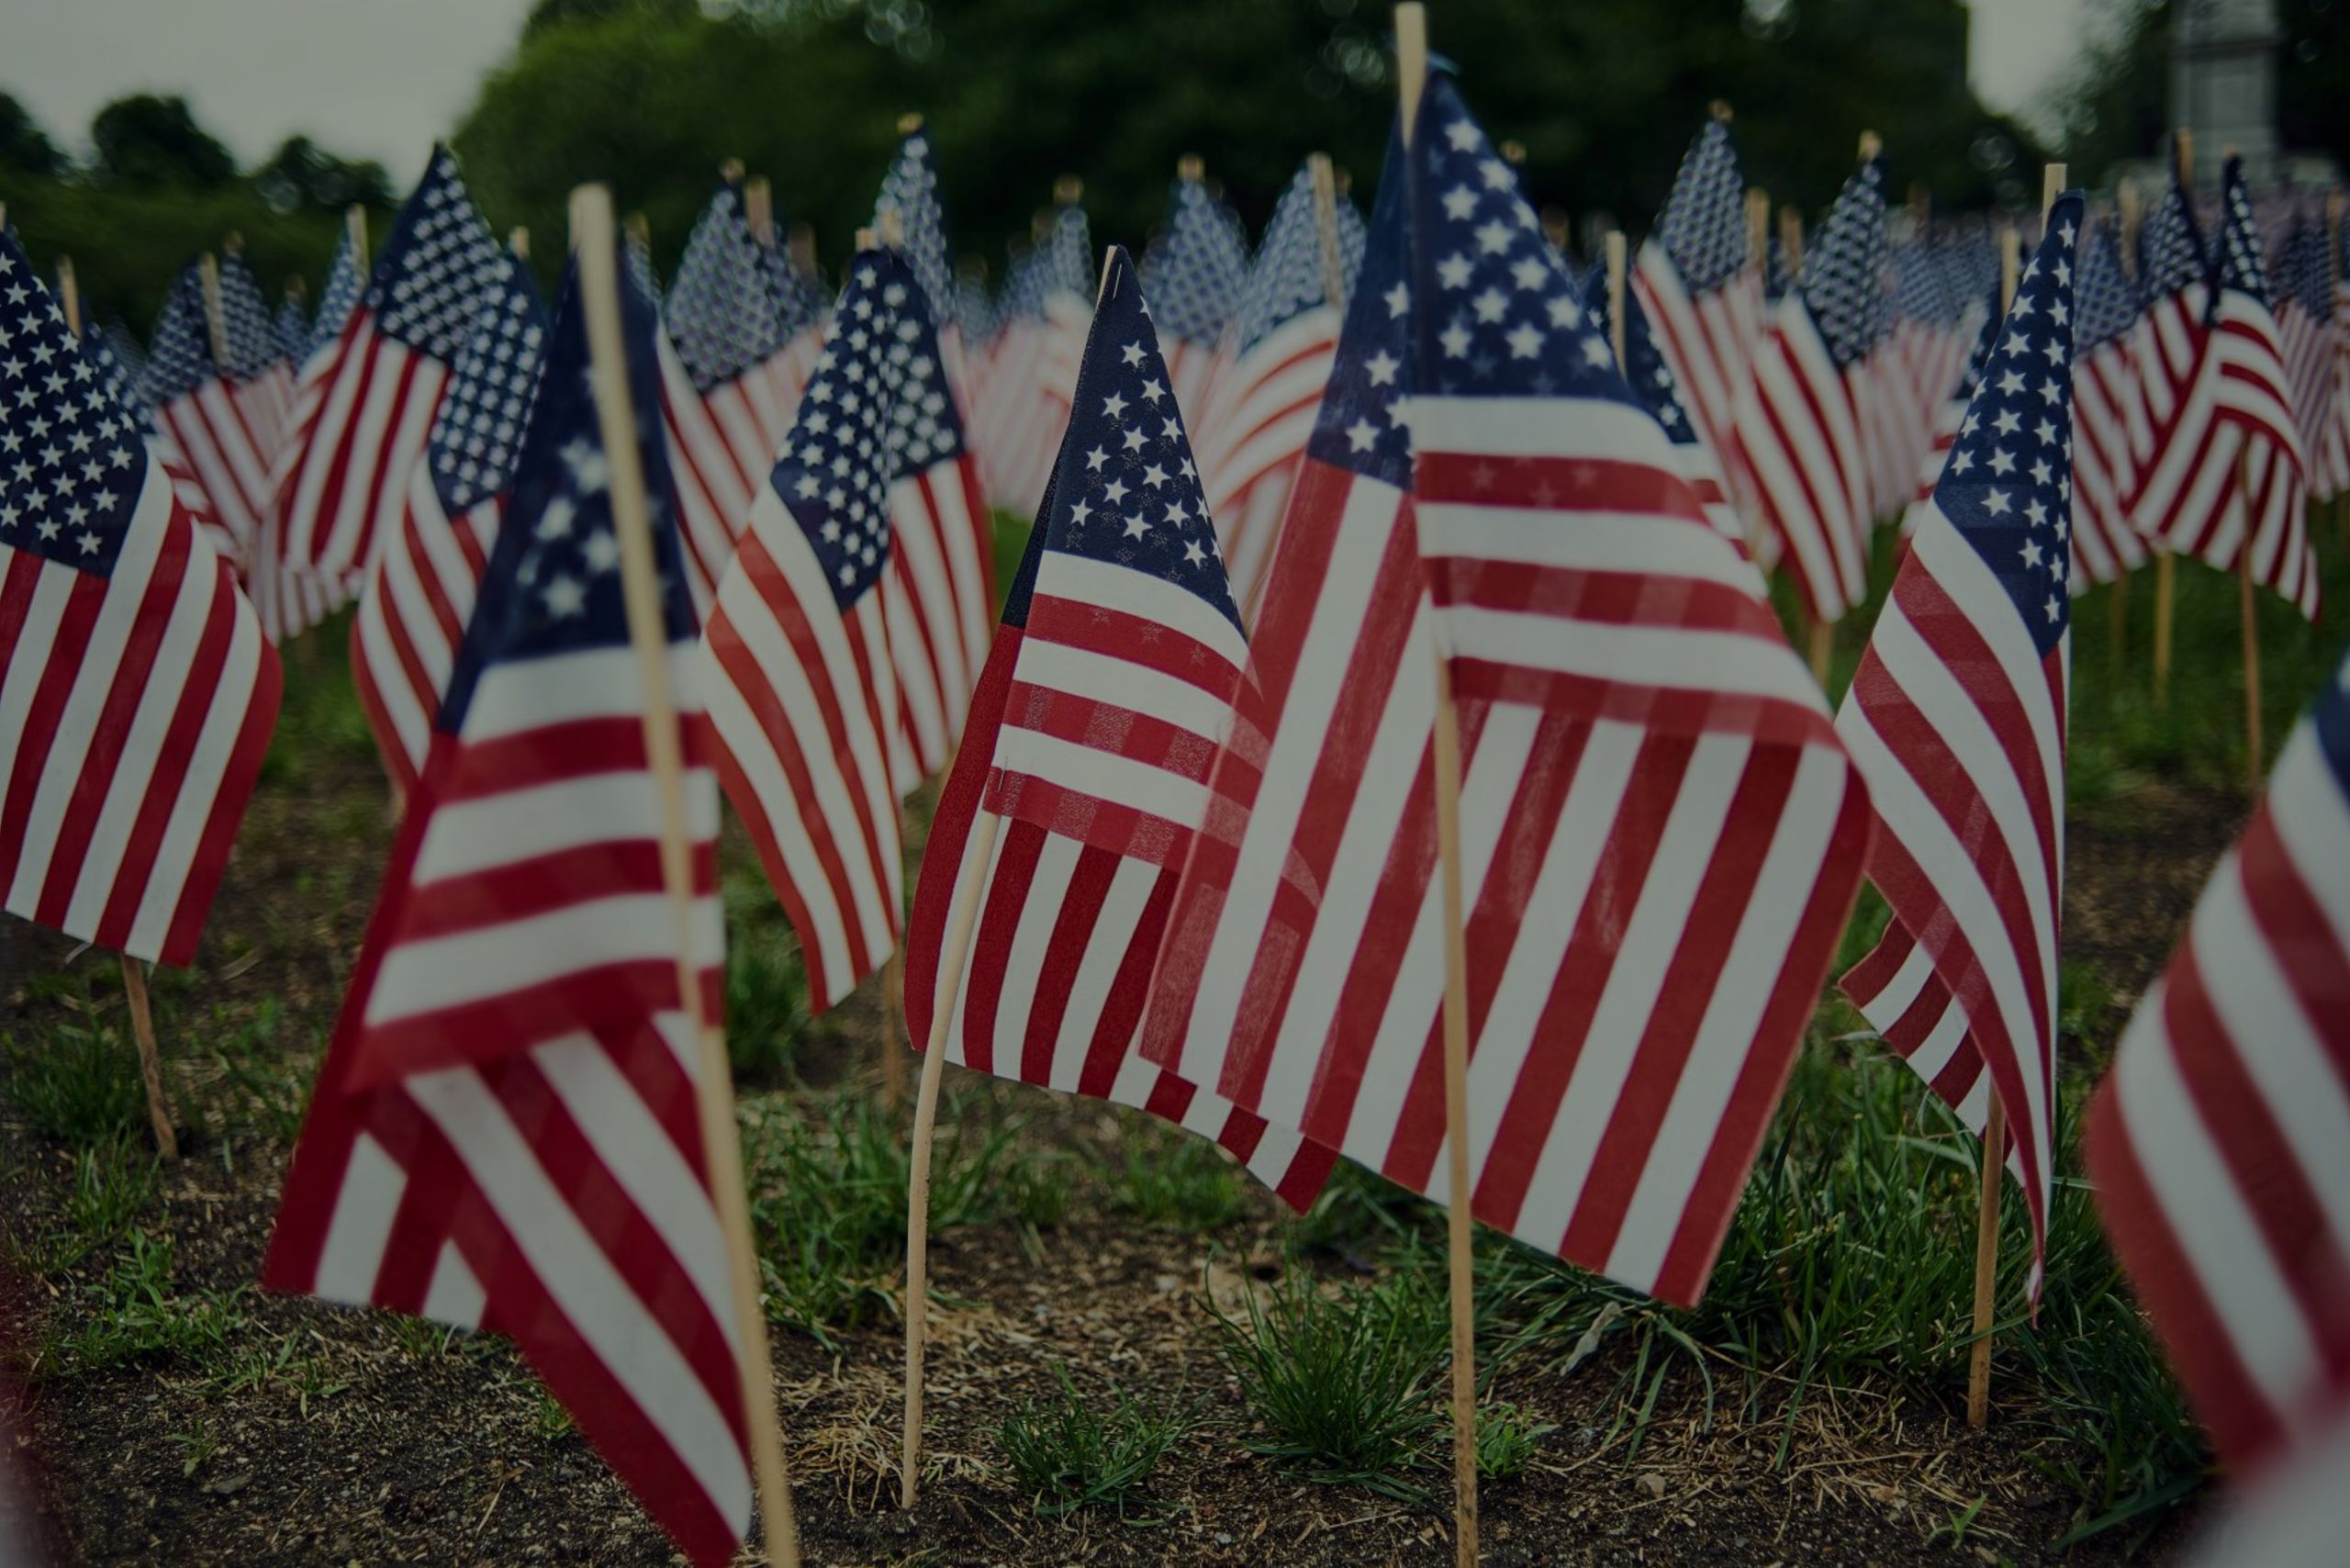 Memorial Day Ceremonies in La Verne, Claremont, Rancho Cucamonga, and Locally